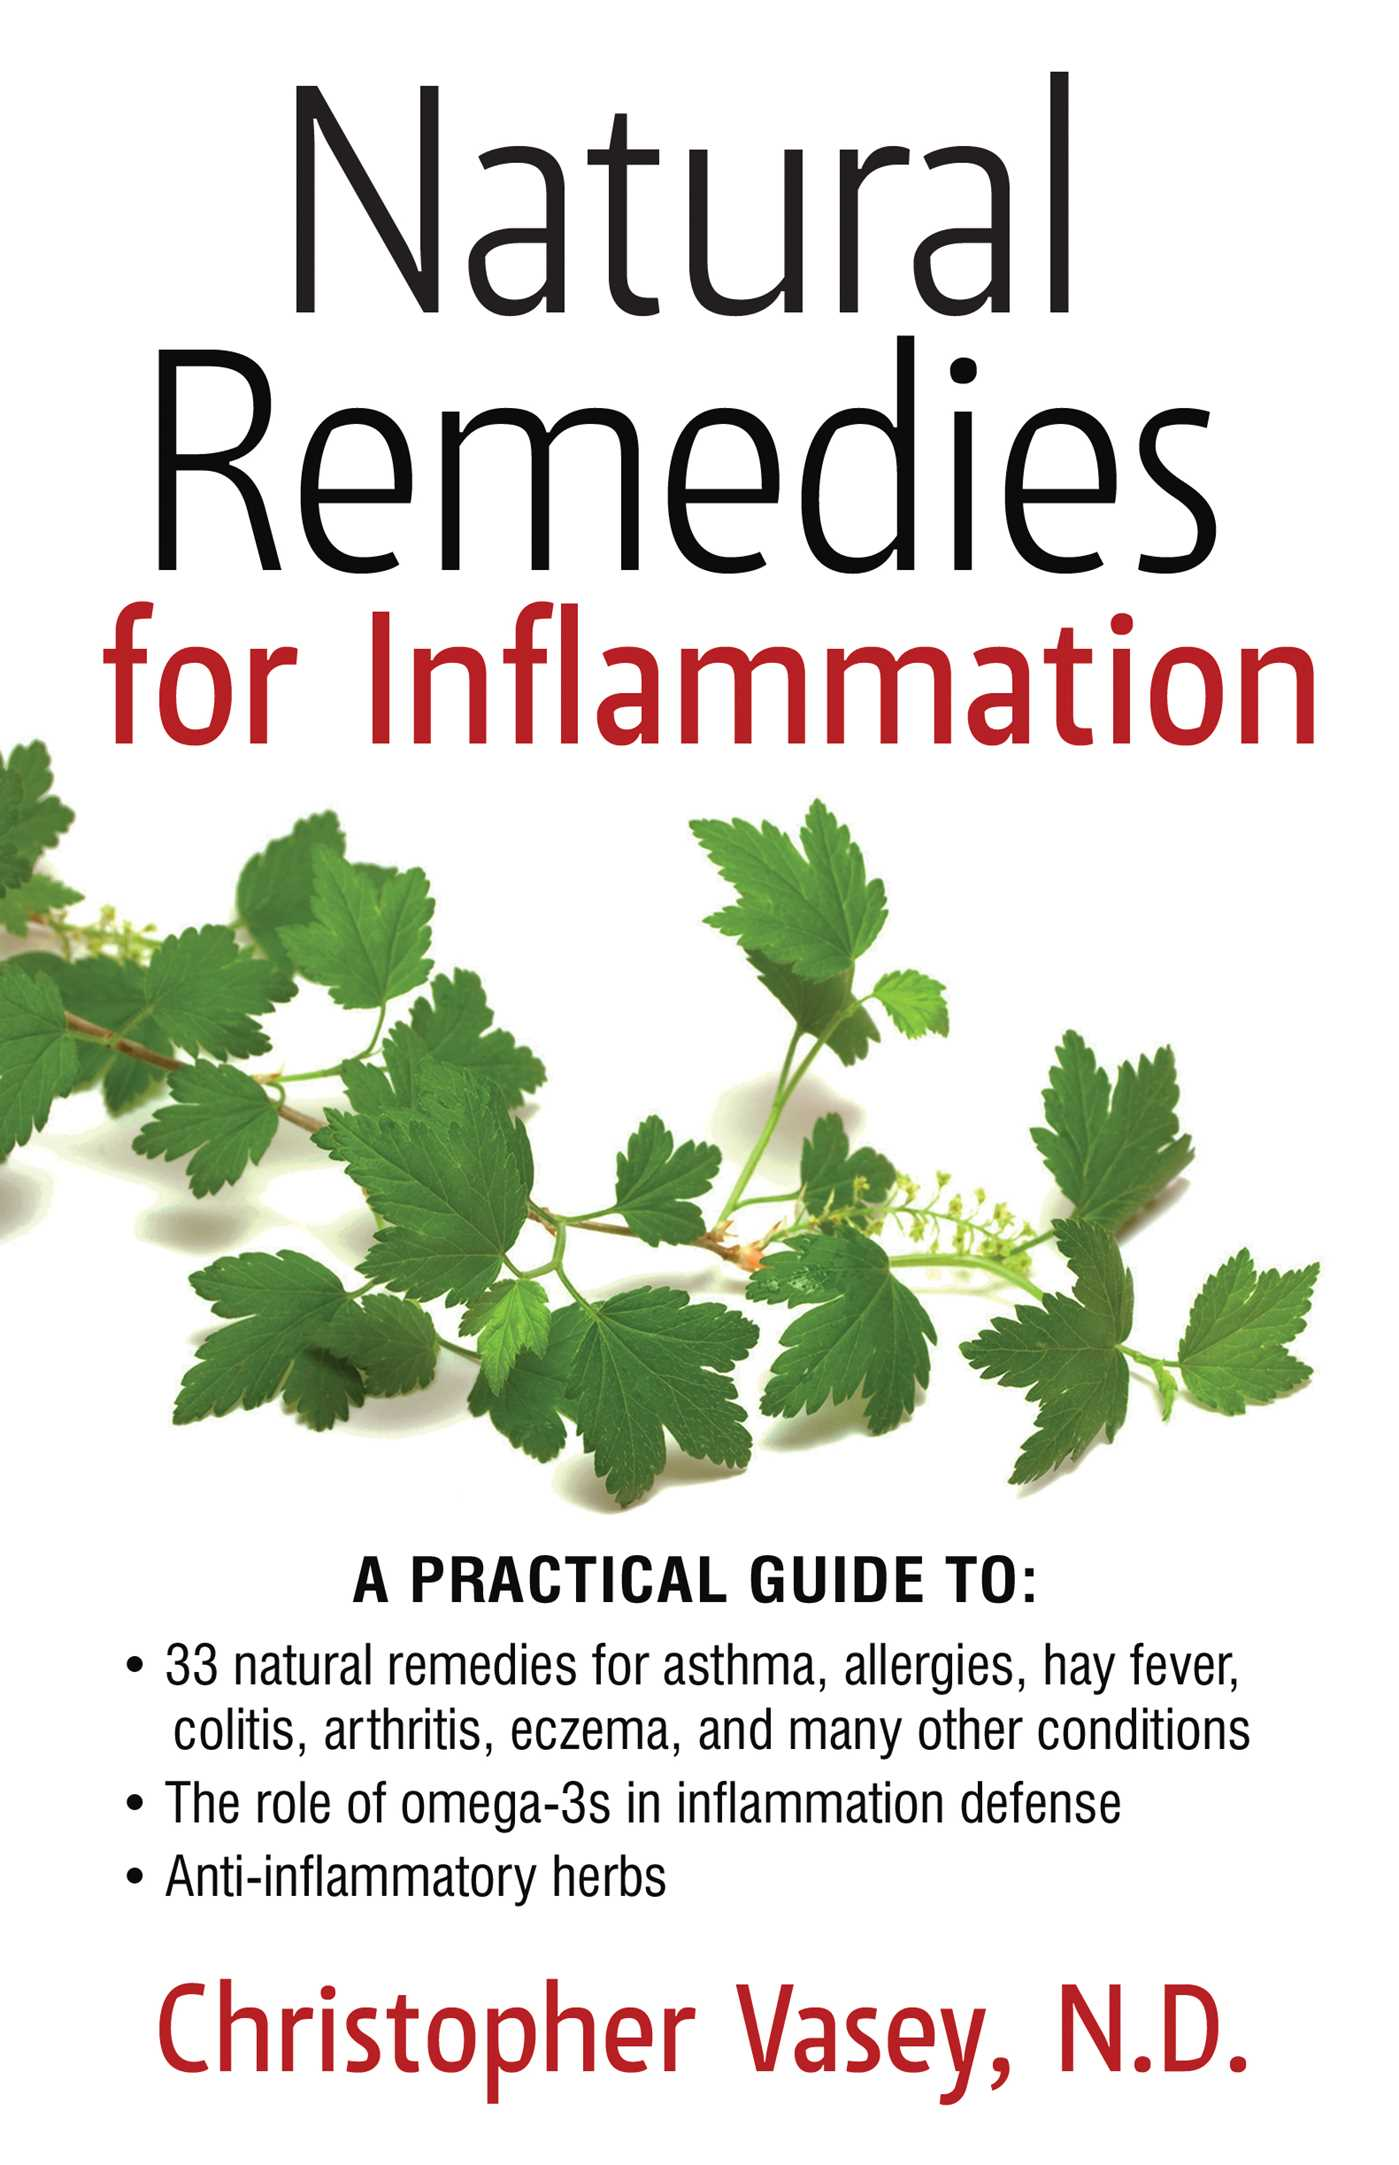 Natural remedies for inflammation 9781620553237 hr